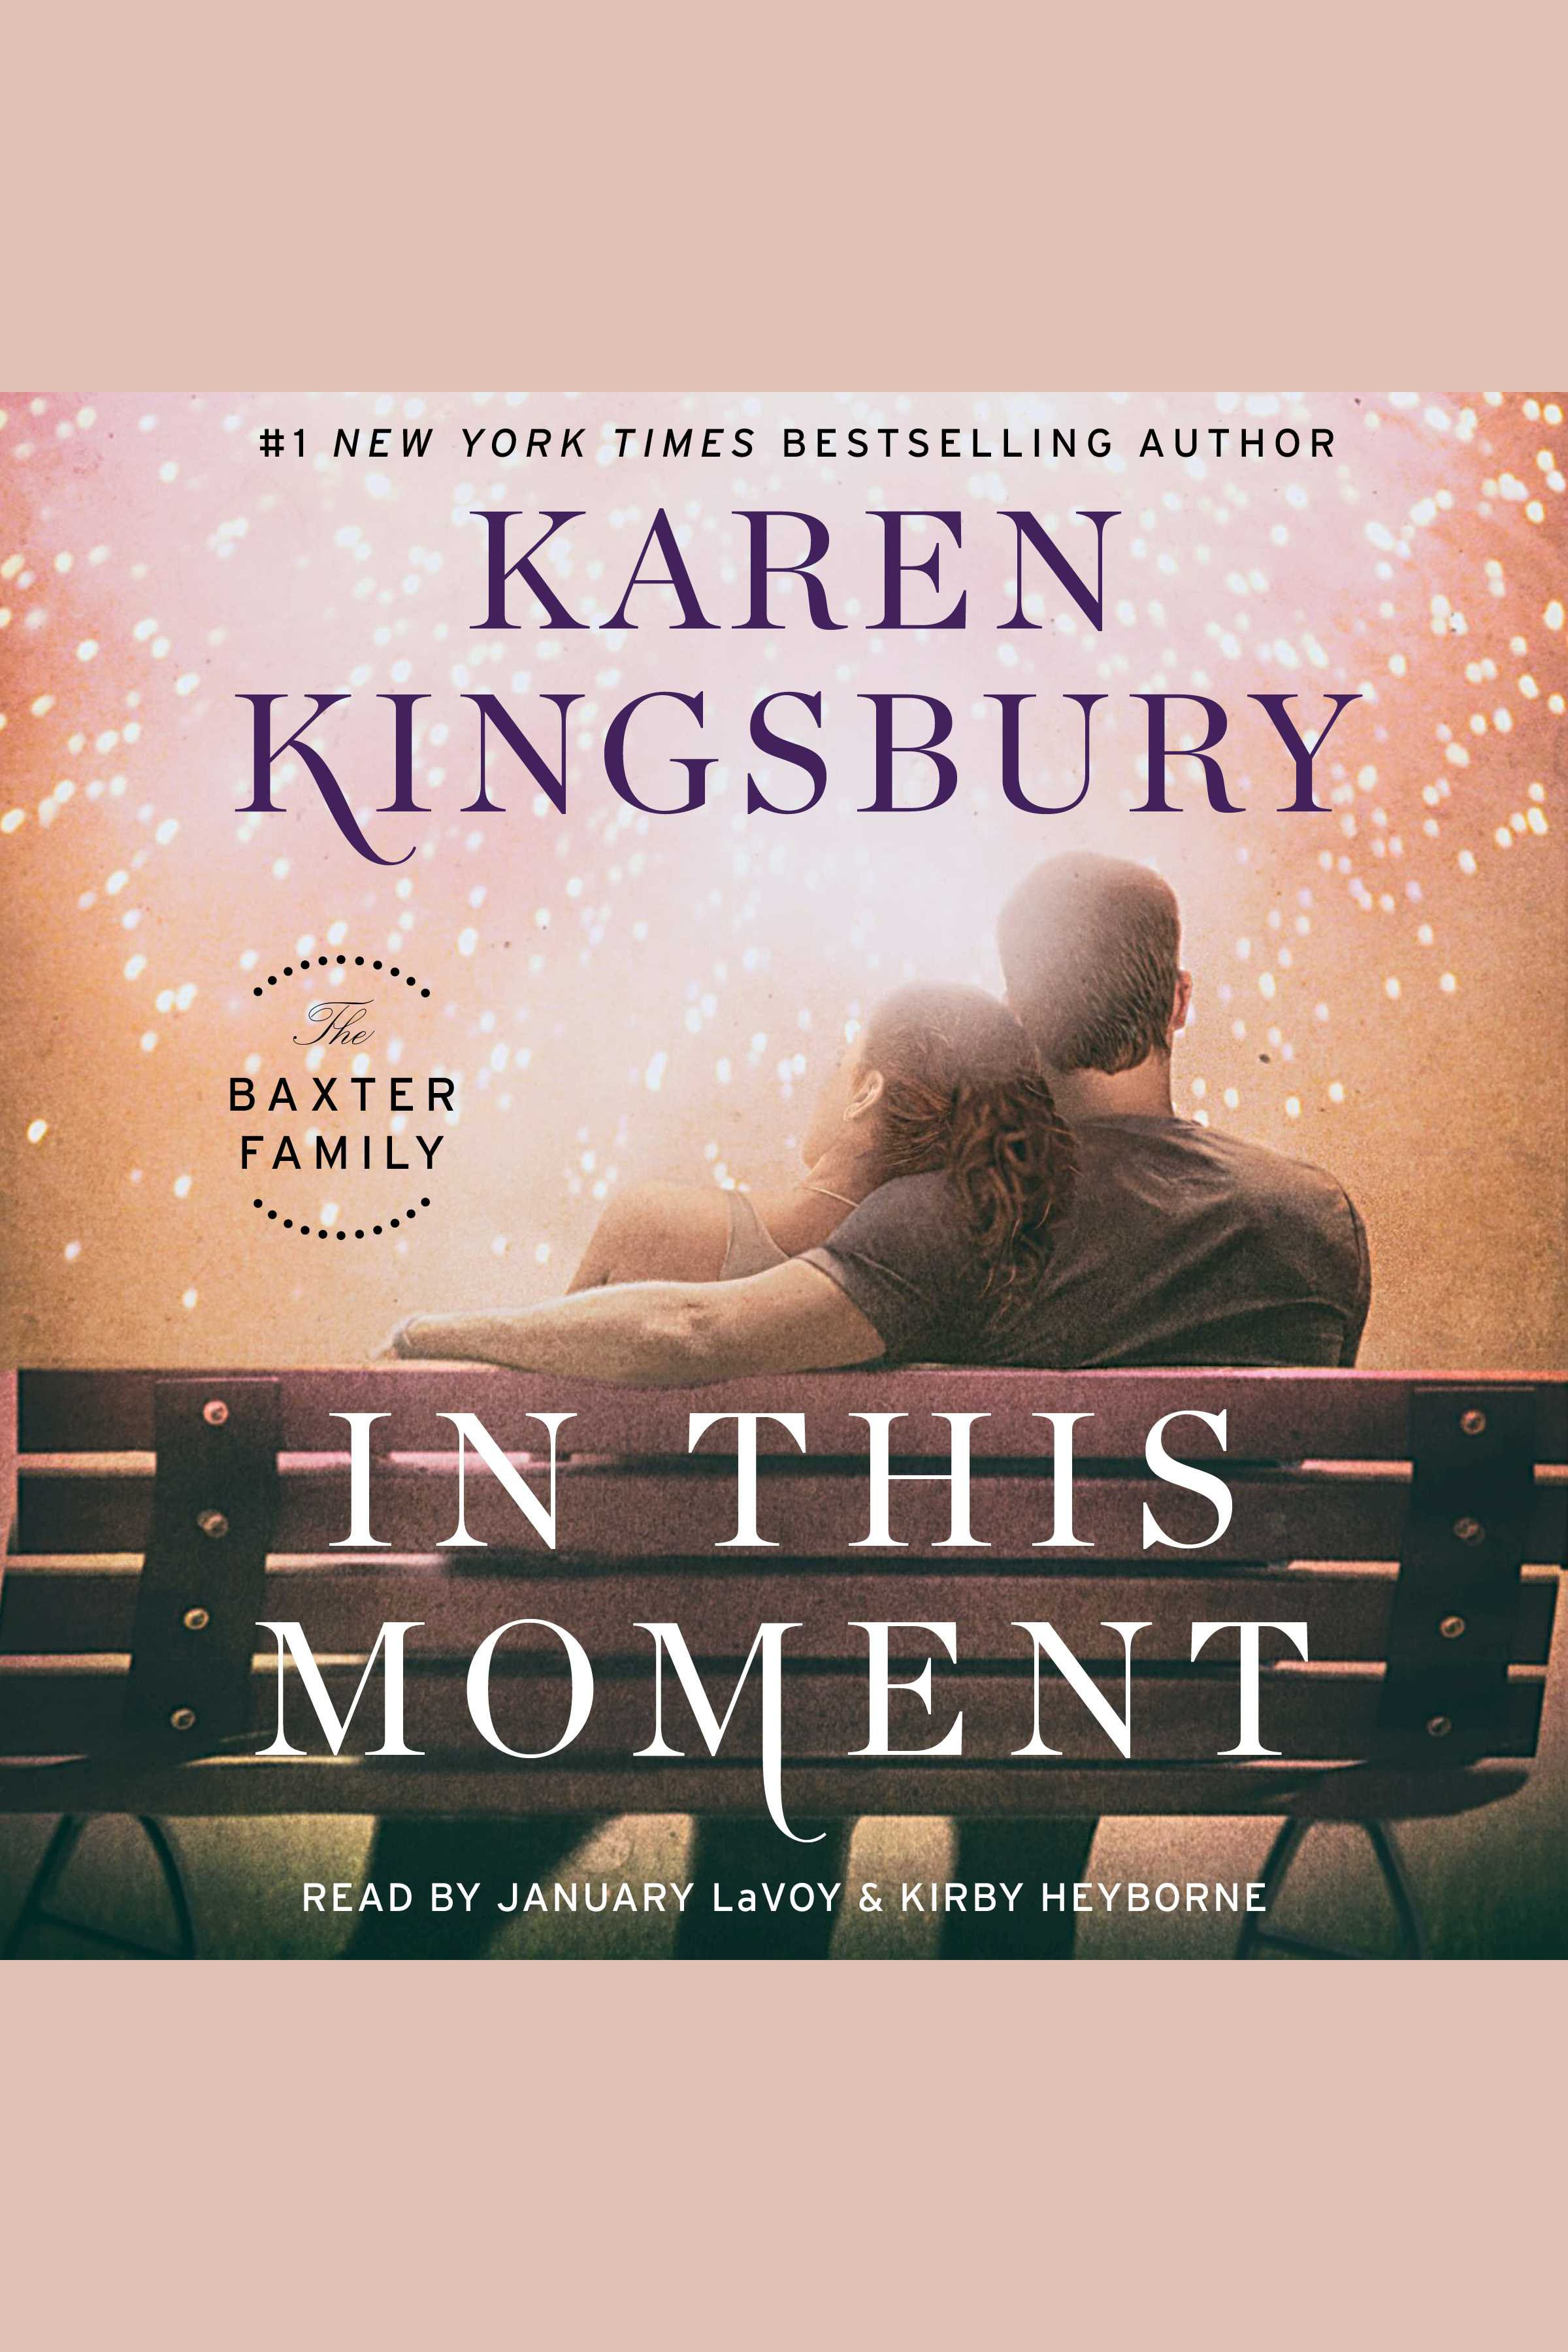 In This Moment [EAUDIOBOOK] A Novel